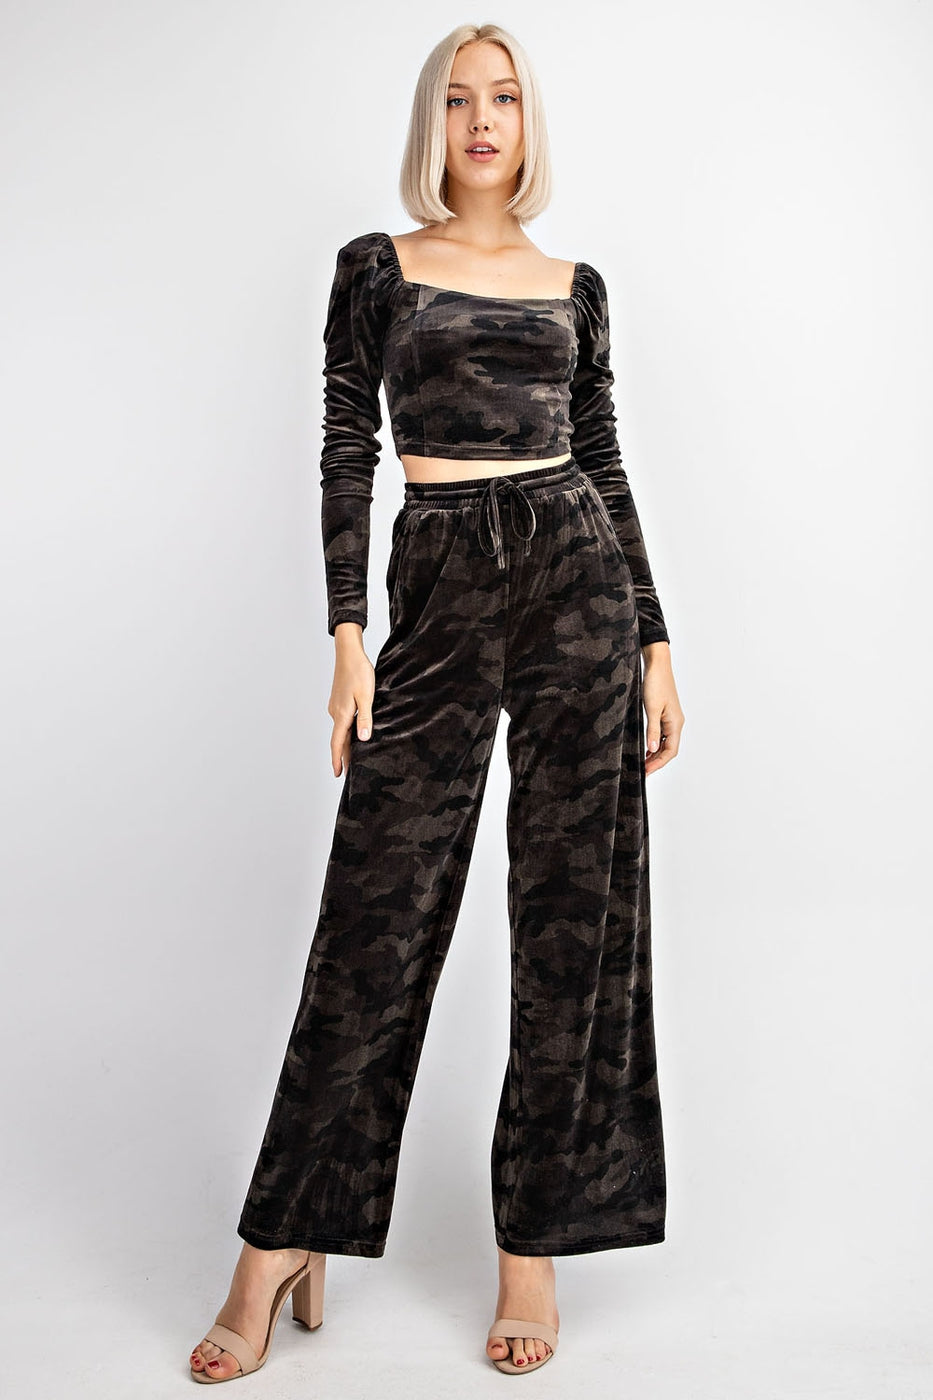 Printed Square Neck Velvet Long Sleeve Crop Top Siin Bees